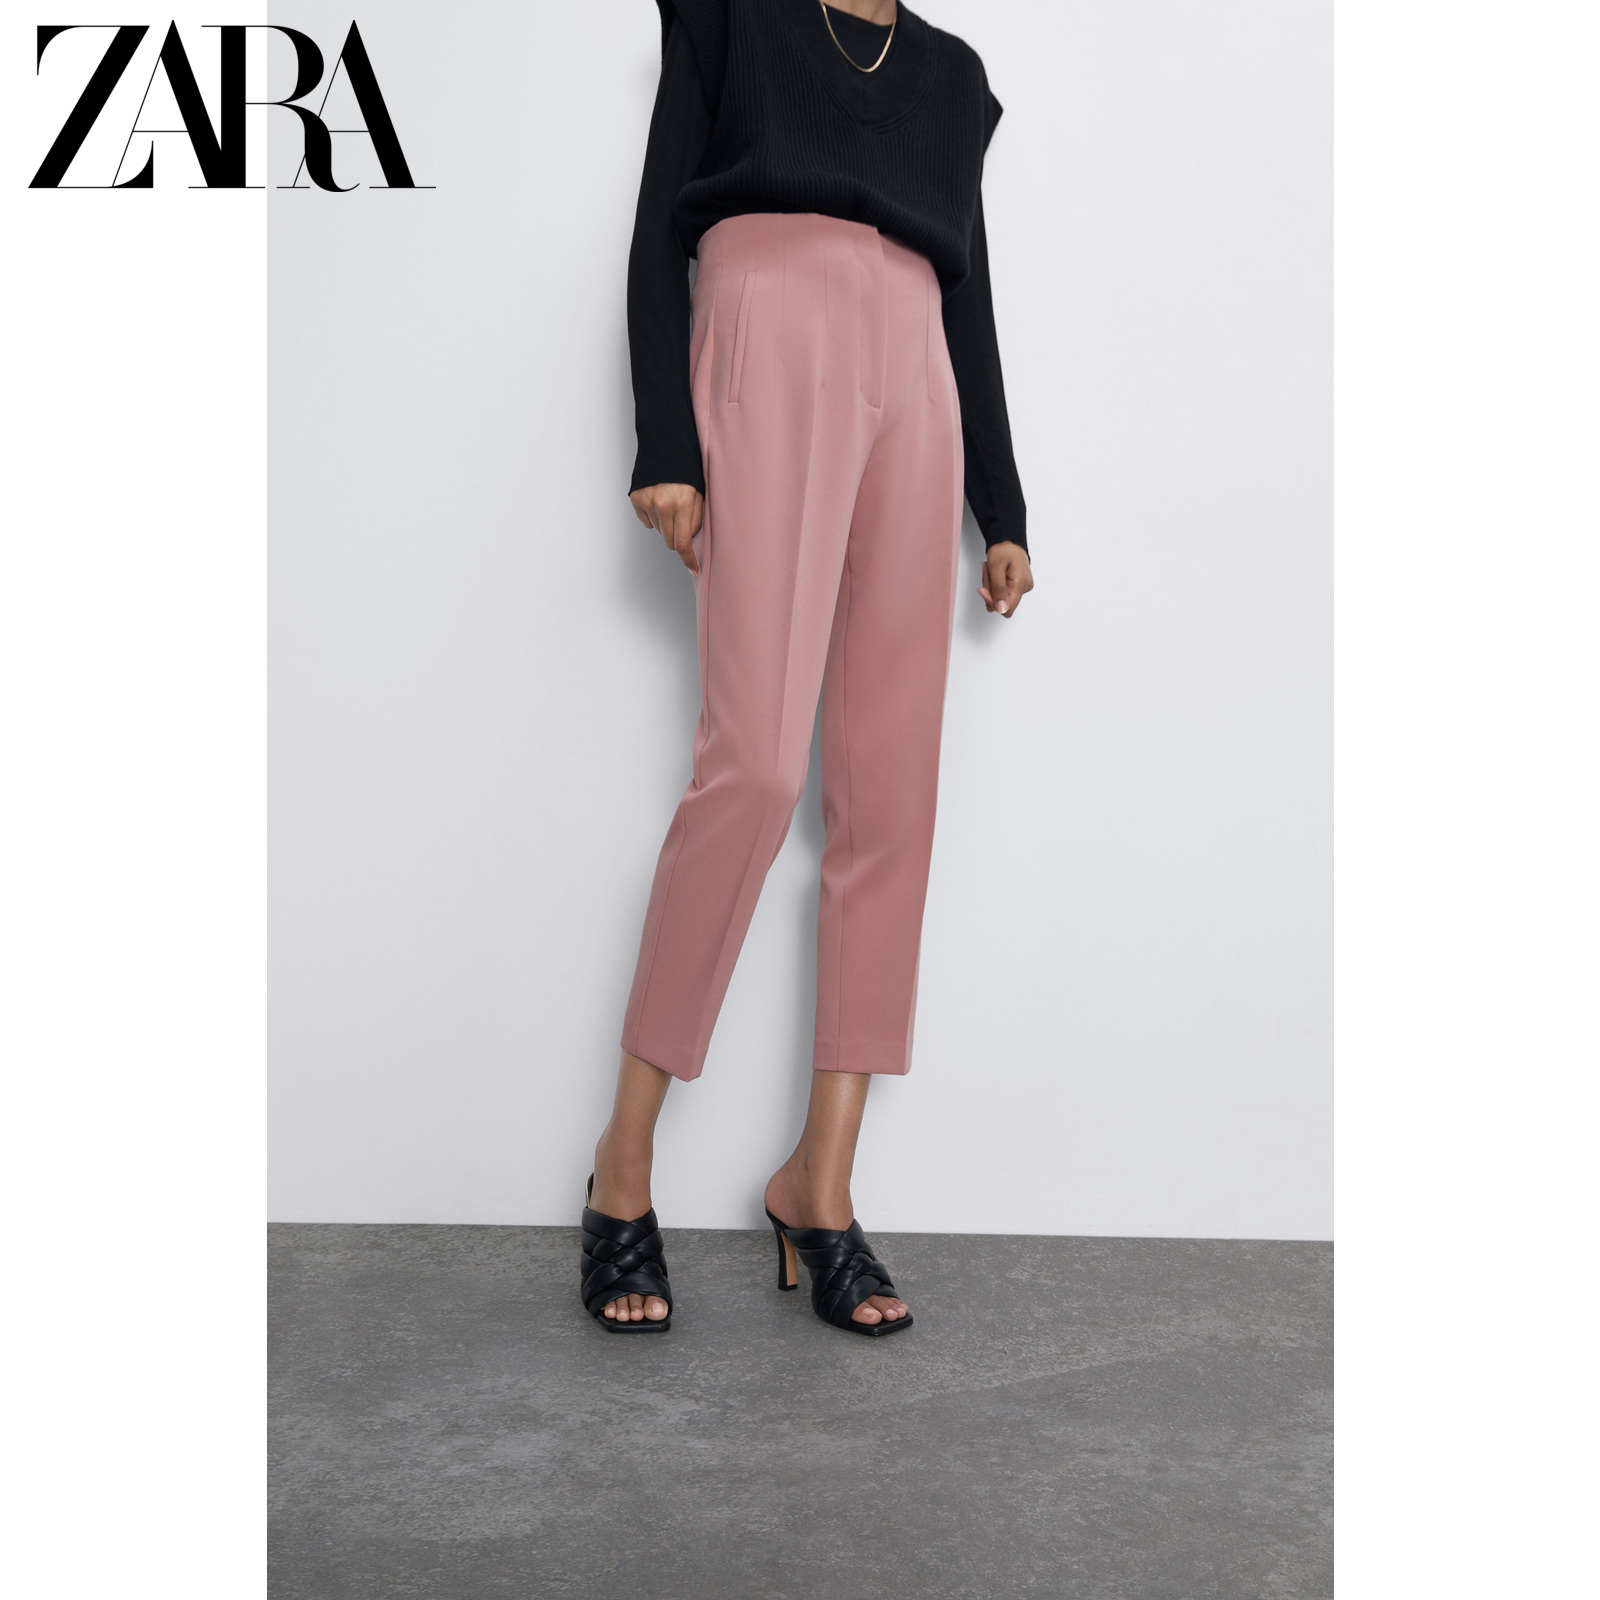 Zara new women's high waist pants 07901032676